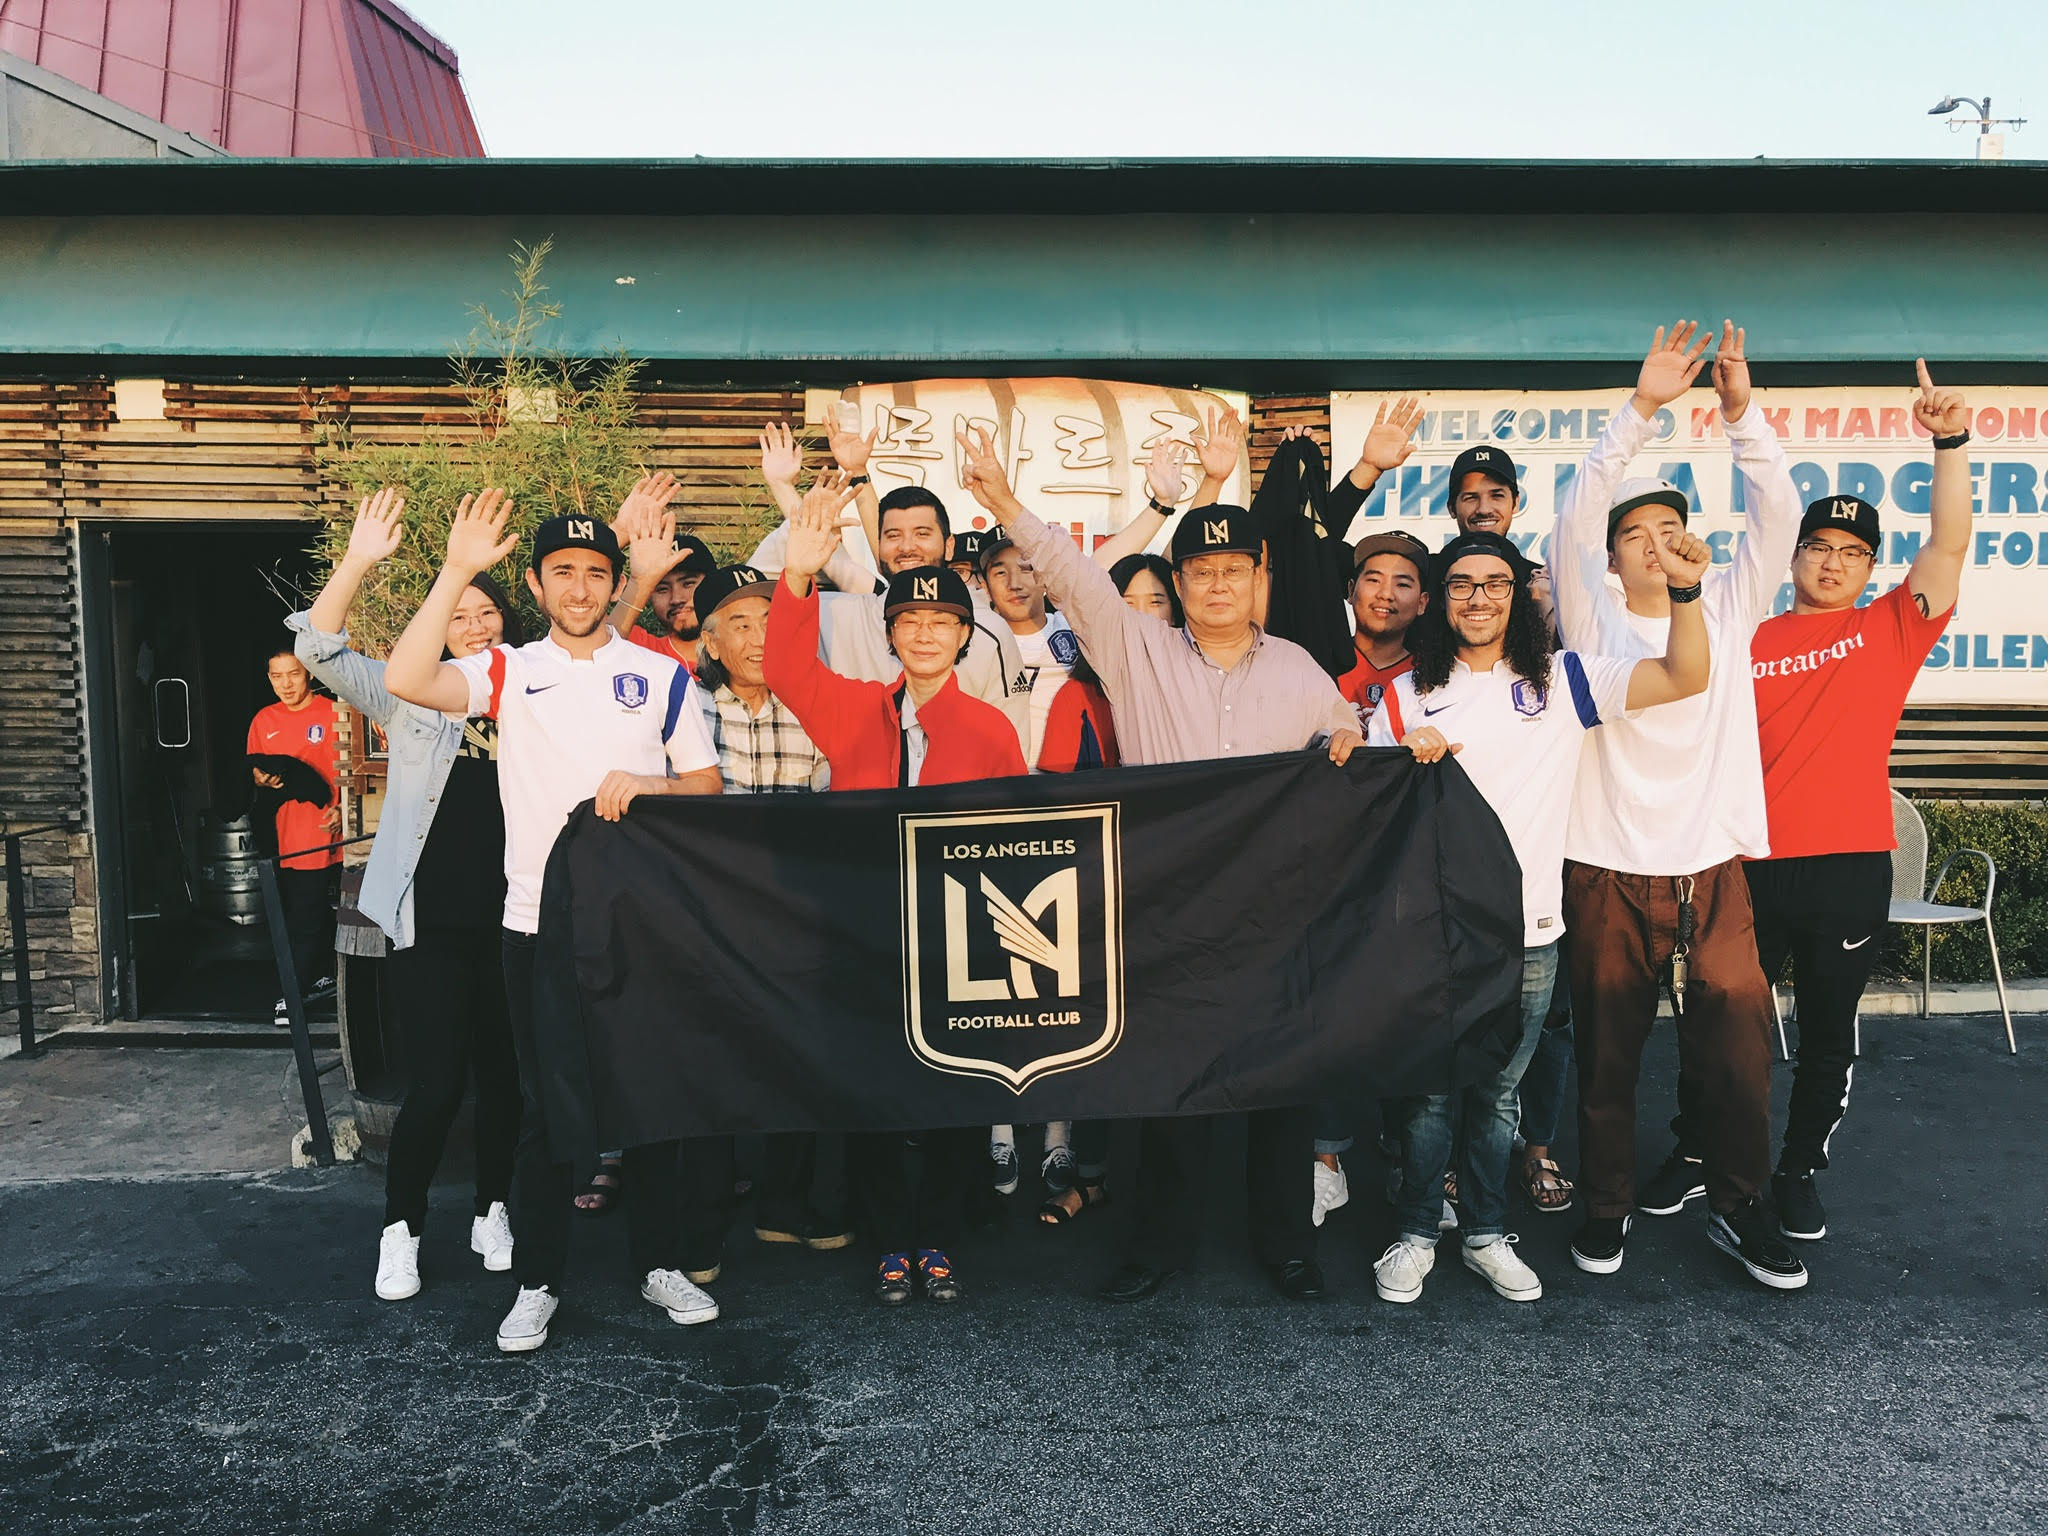 For the Love of the Game: Chatting with the LAFC Tigers Supporters Group